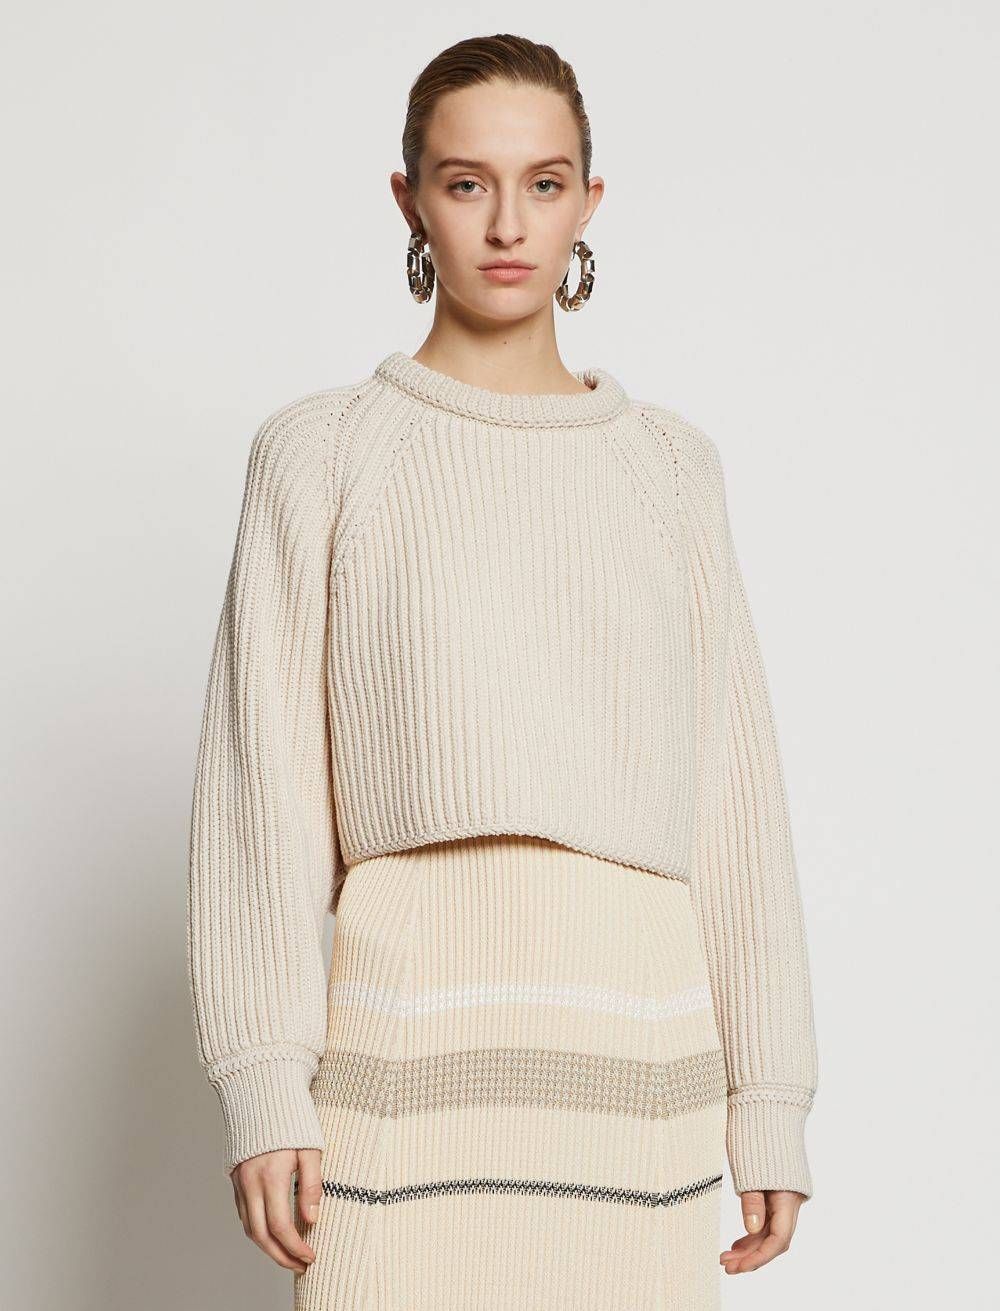 Proenza Schouler Chunky Cotton Rib Sweater ecru/white S